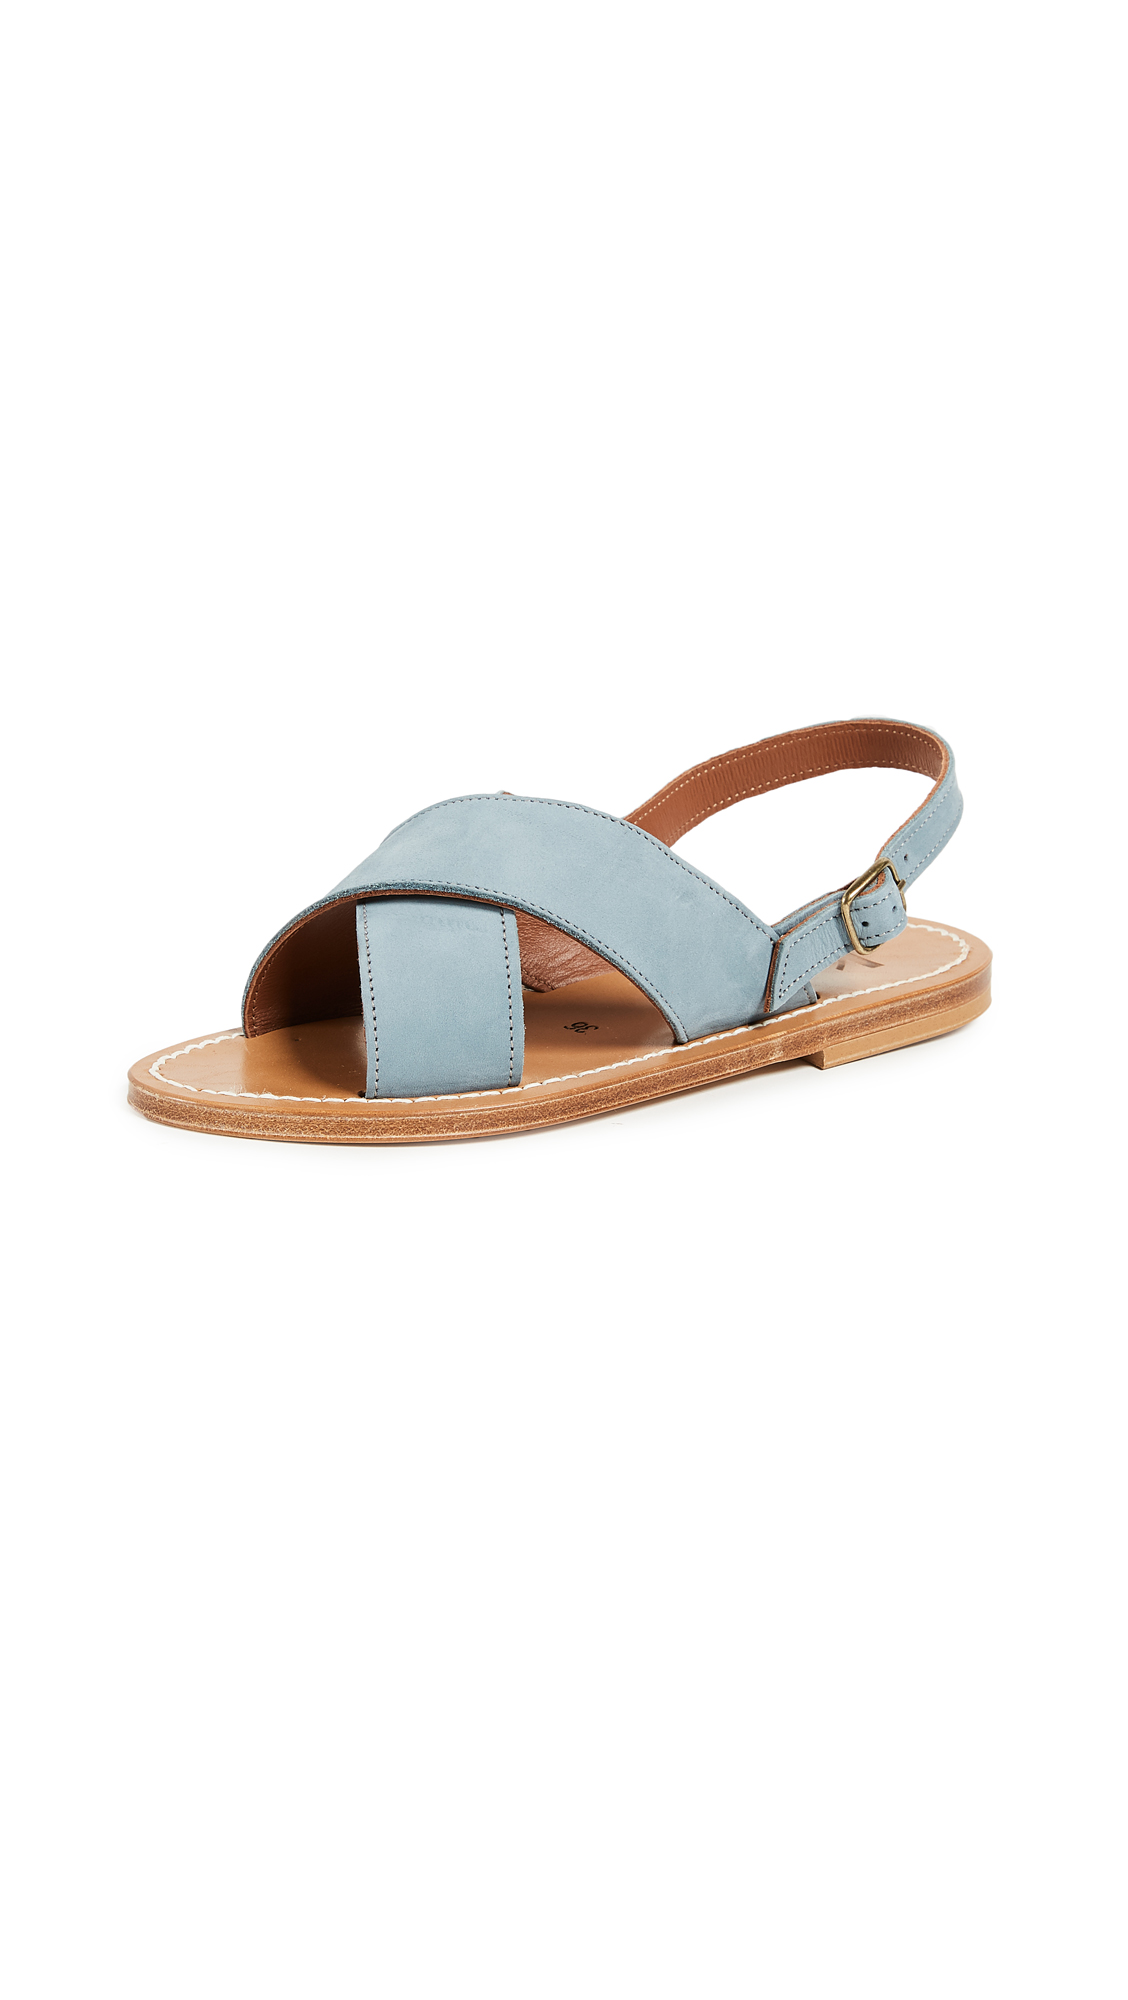 K. Jacques Osorno Crisscross Sandals